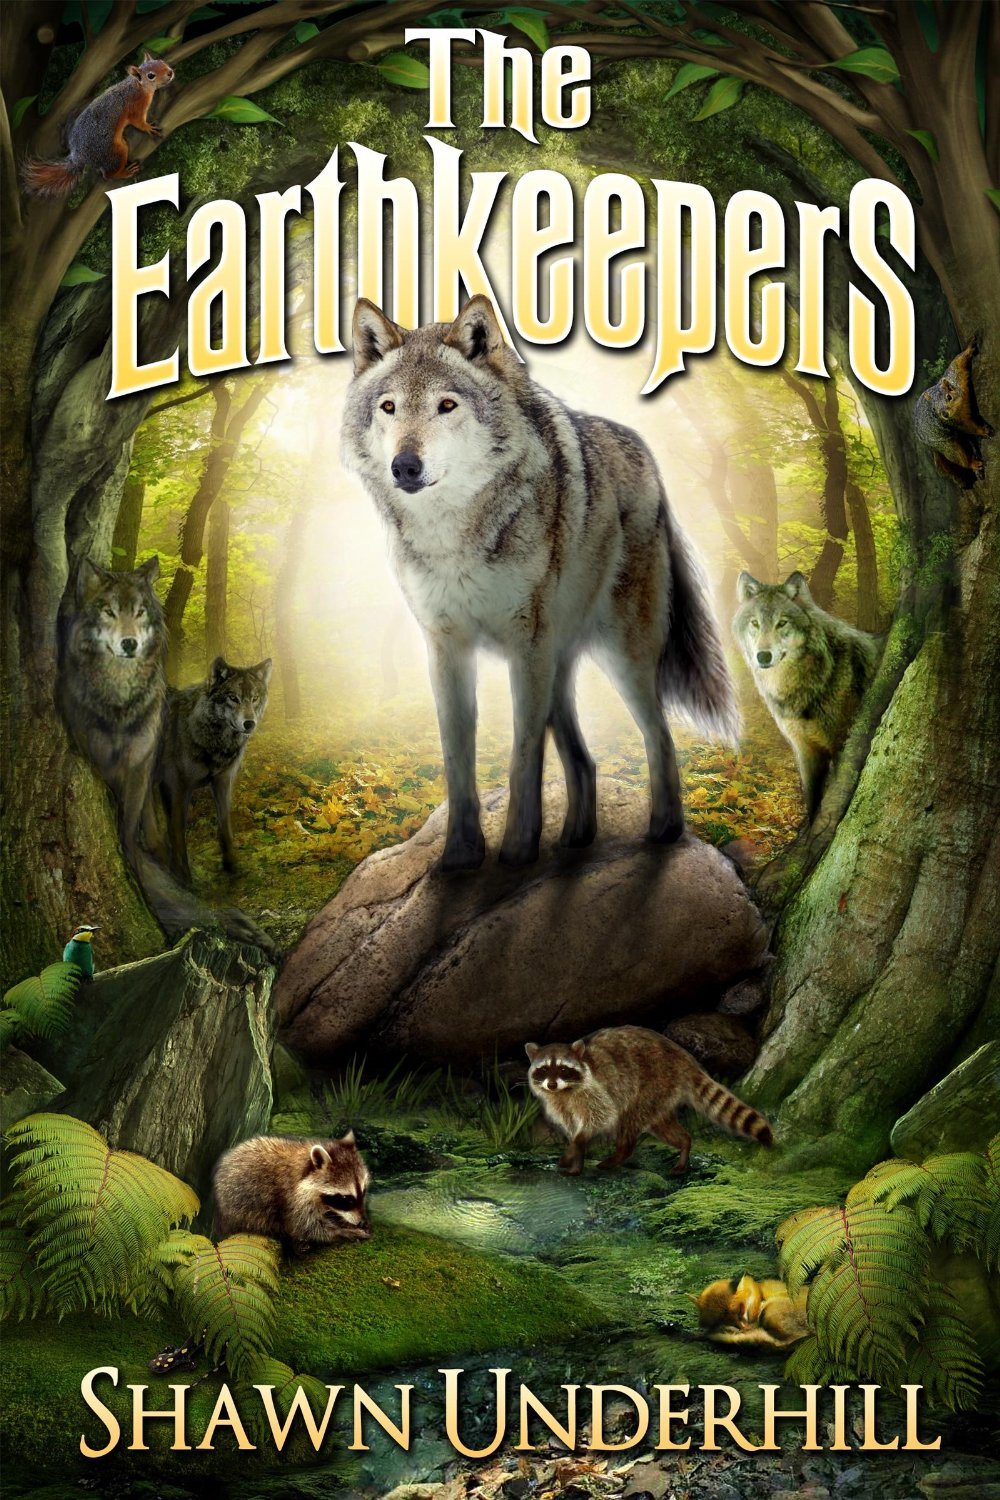 Book Review | The Earthkeepers by Shawn Underhill